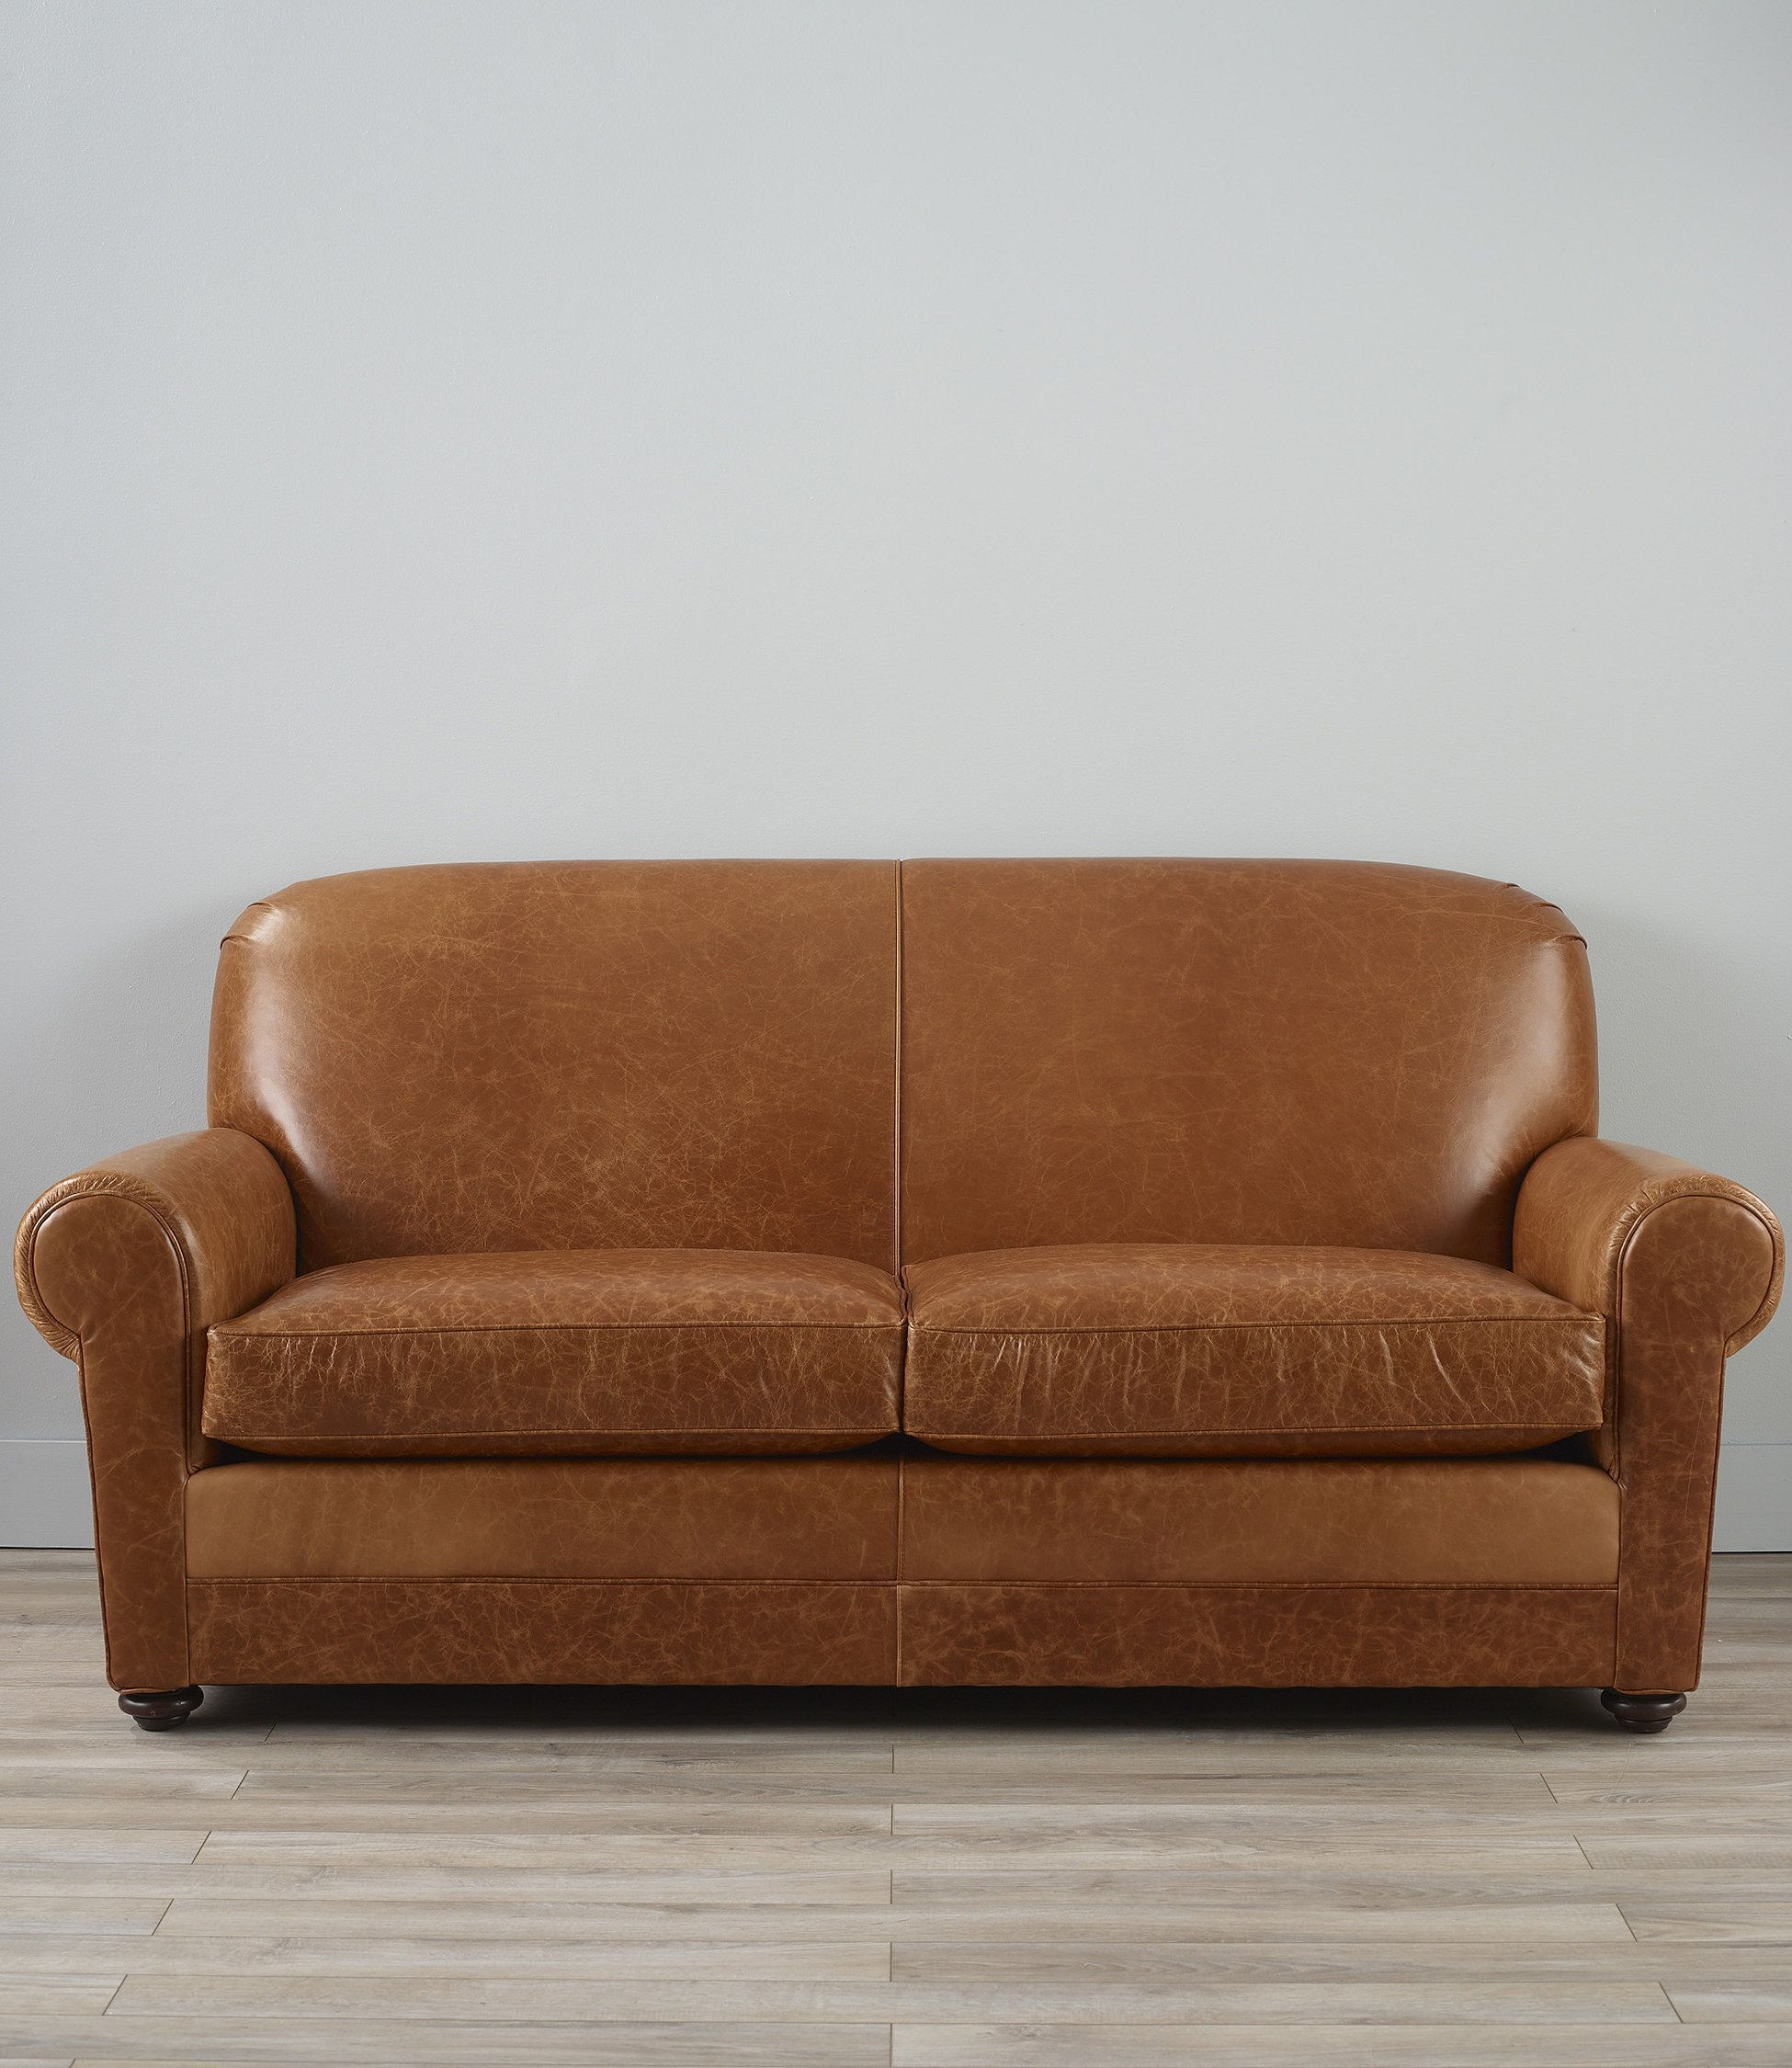 Lodge Sofa Best Quality Beds Melbourne L Bean Leather Products Home